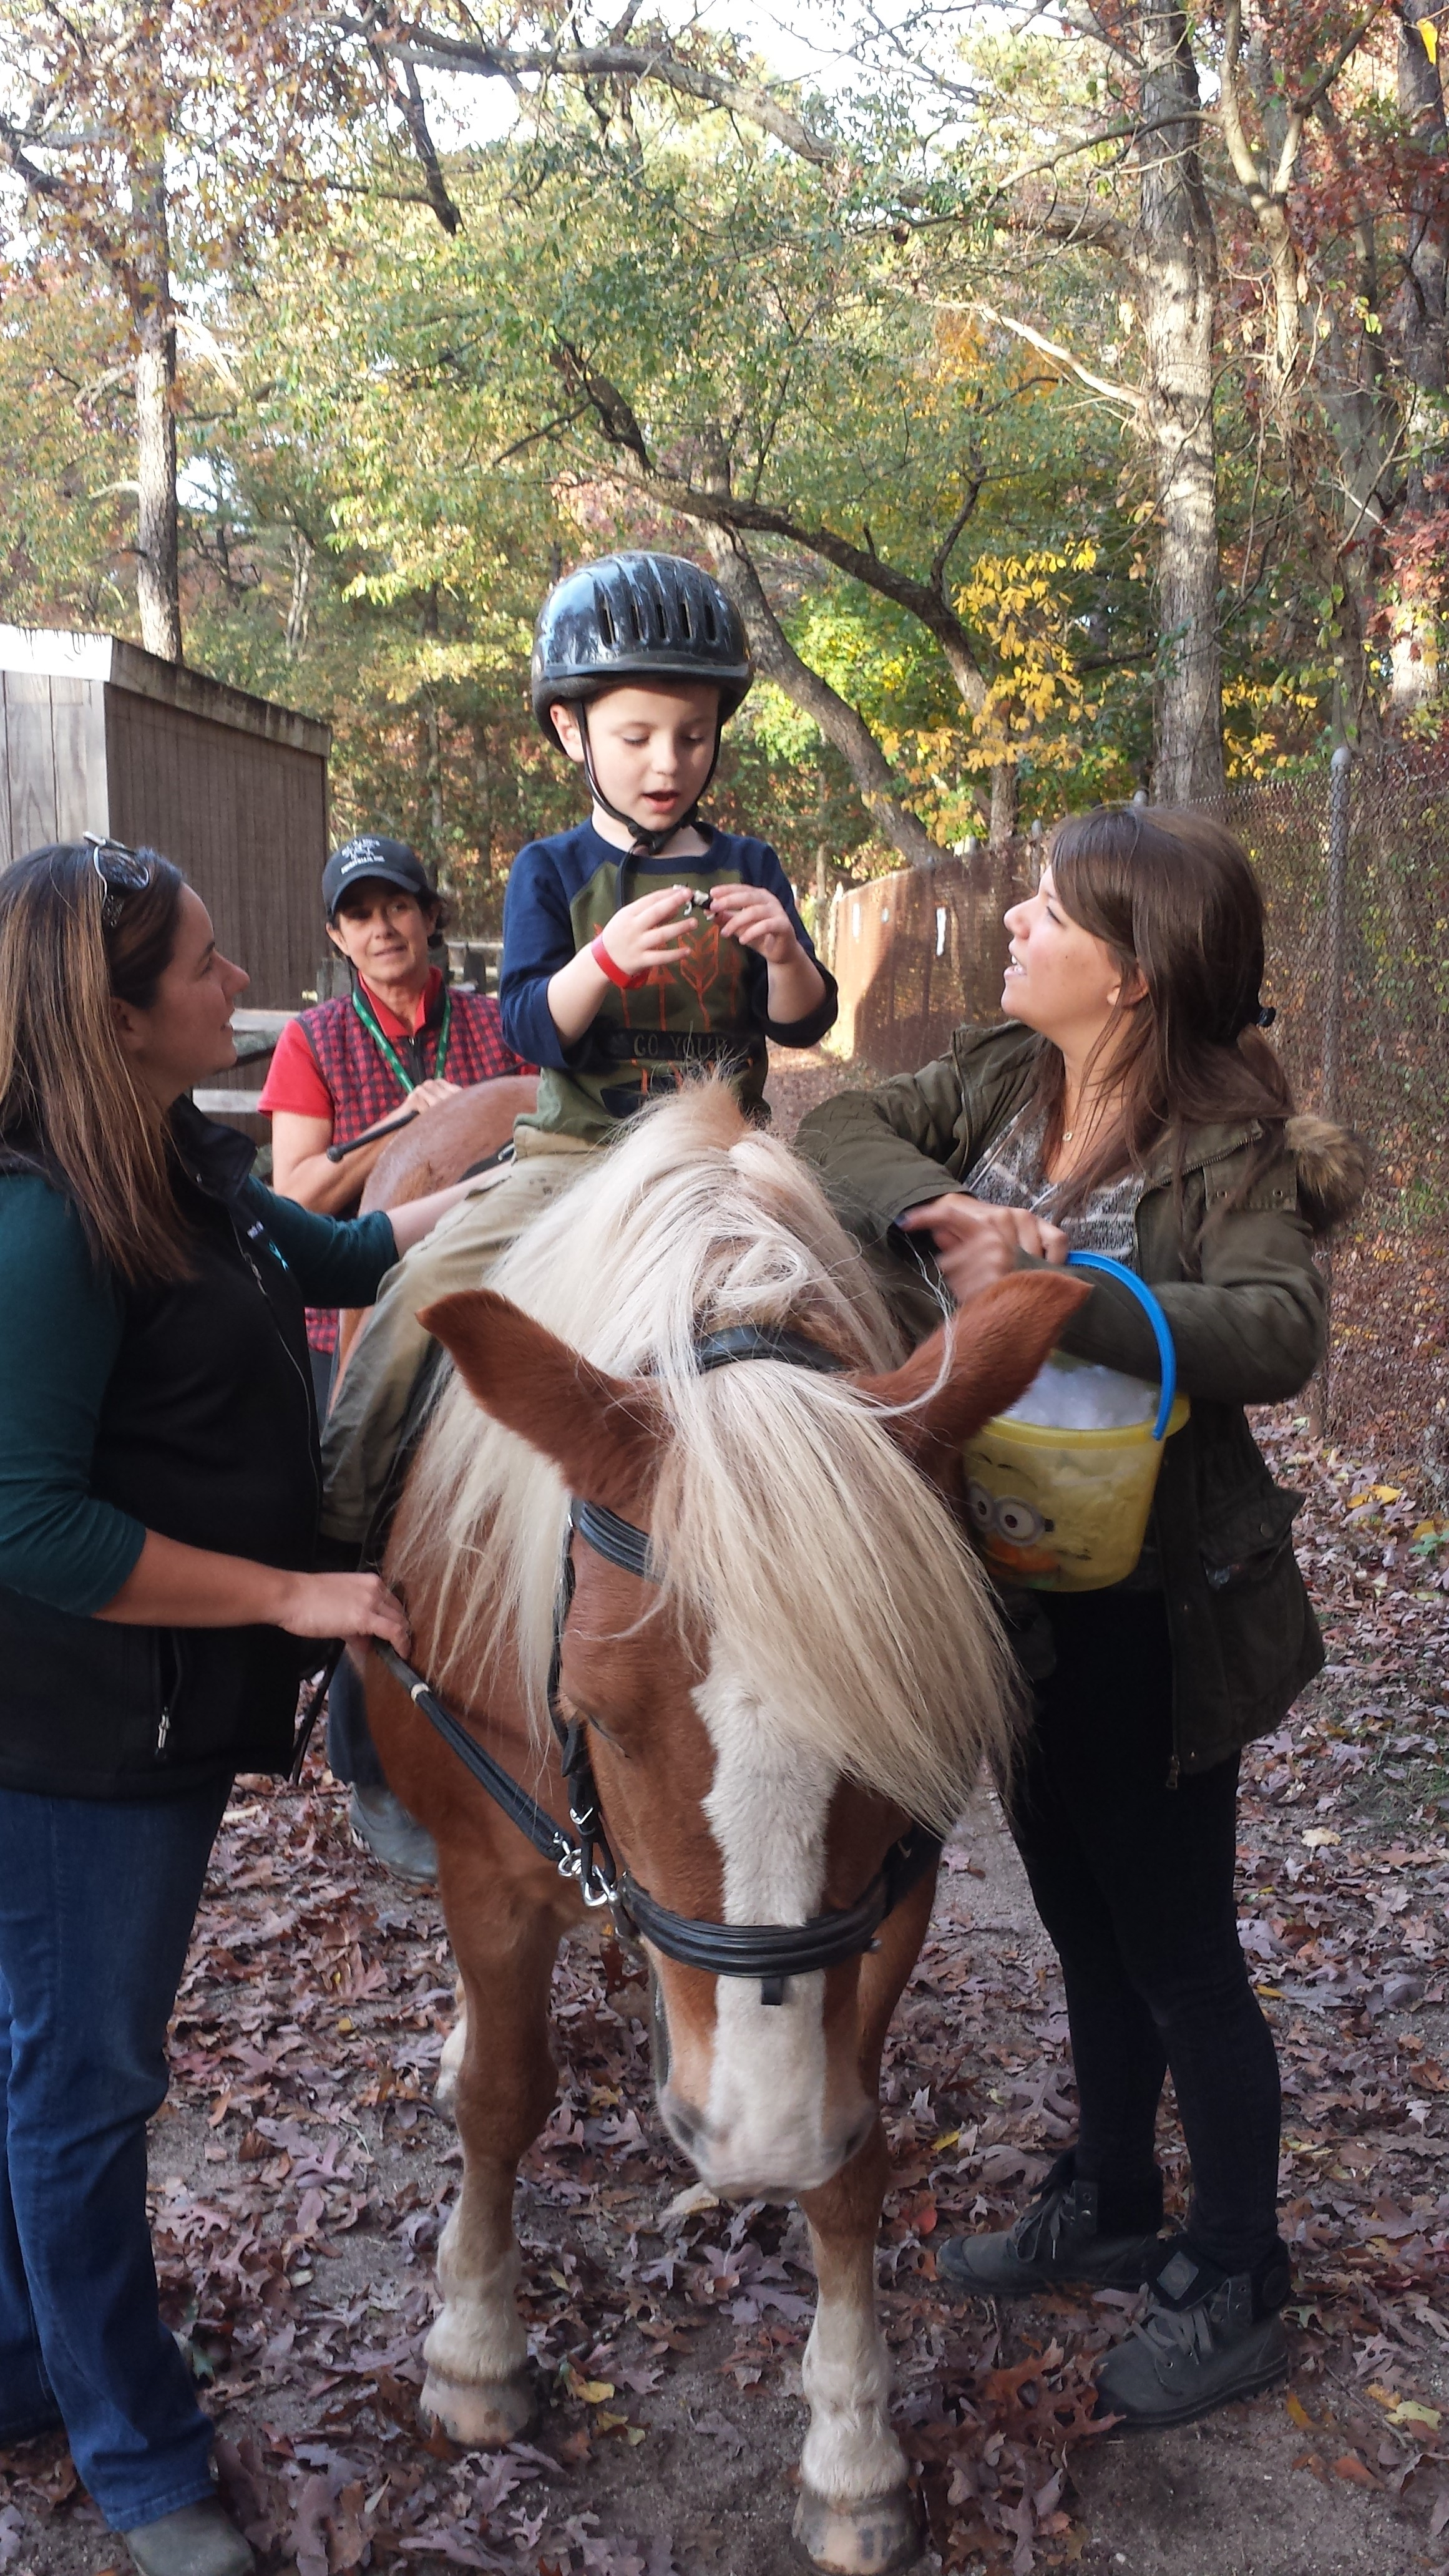 Rocco and her assistants interact with a client who is horseback during a therapy session